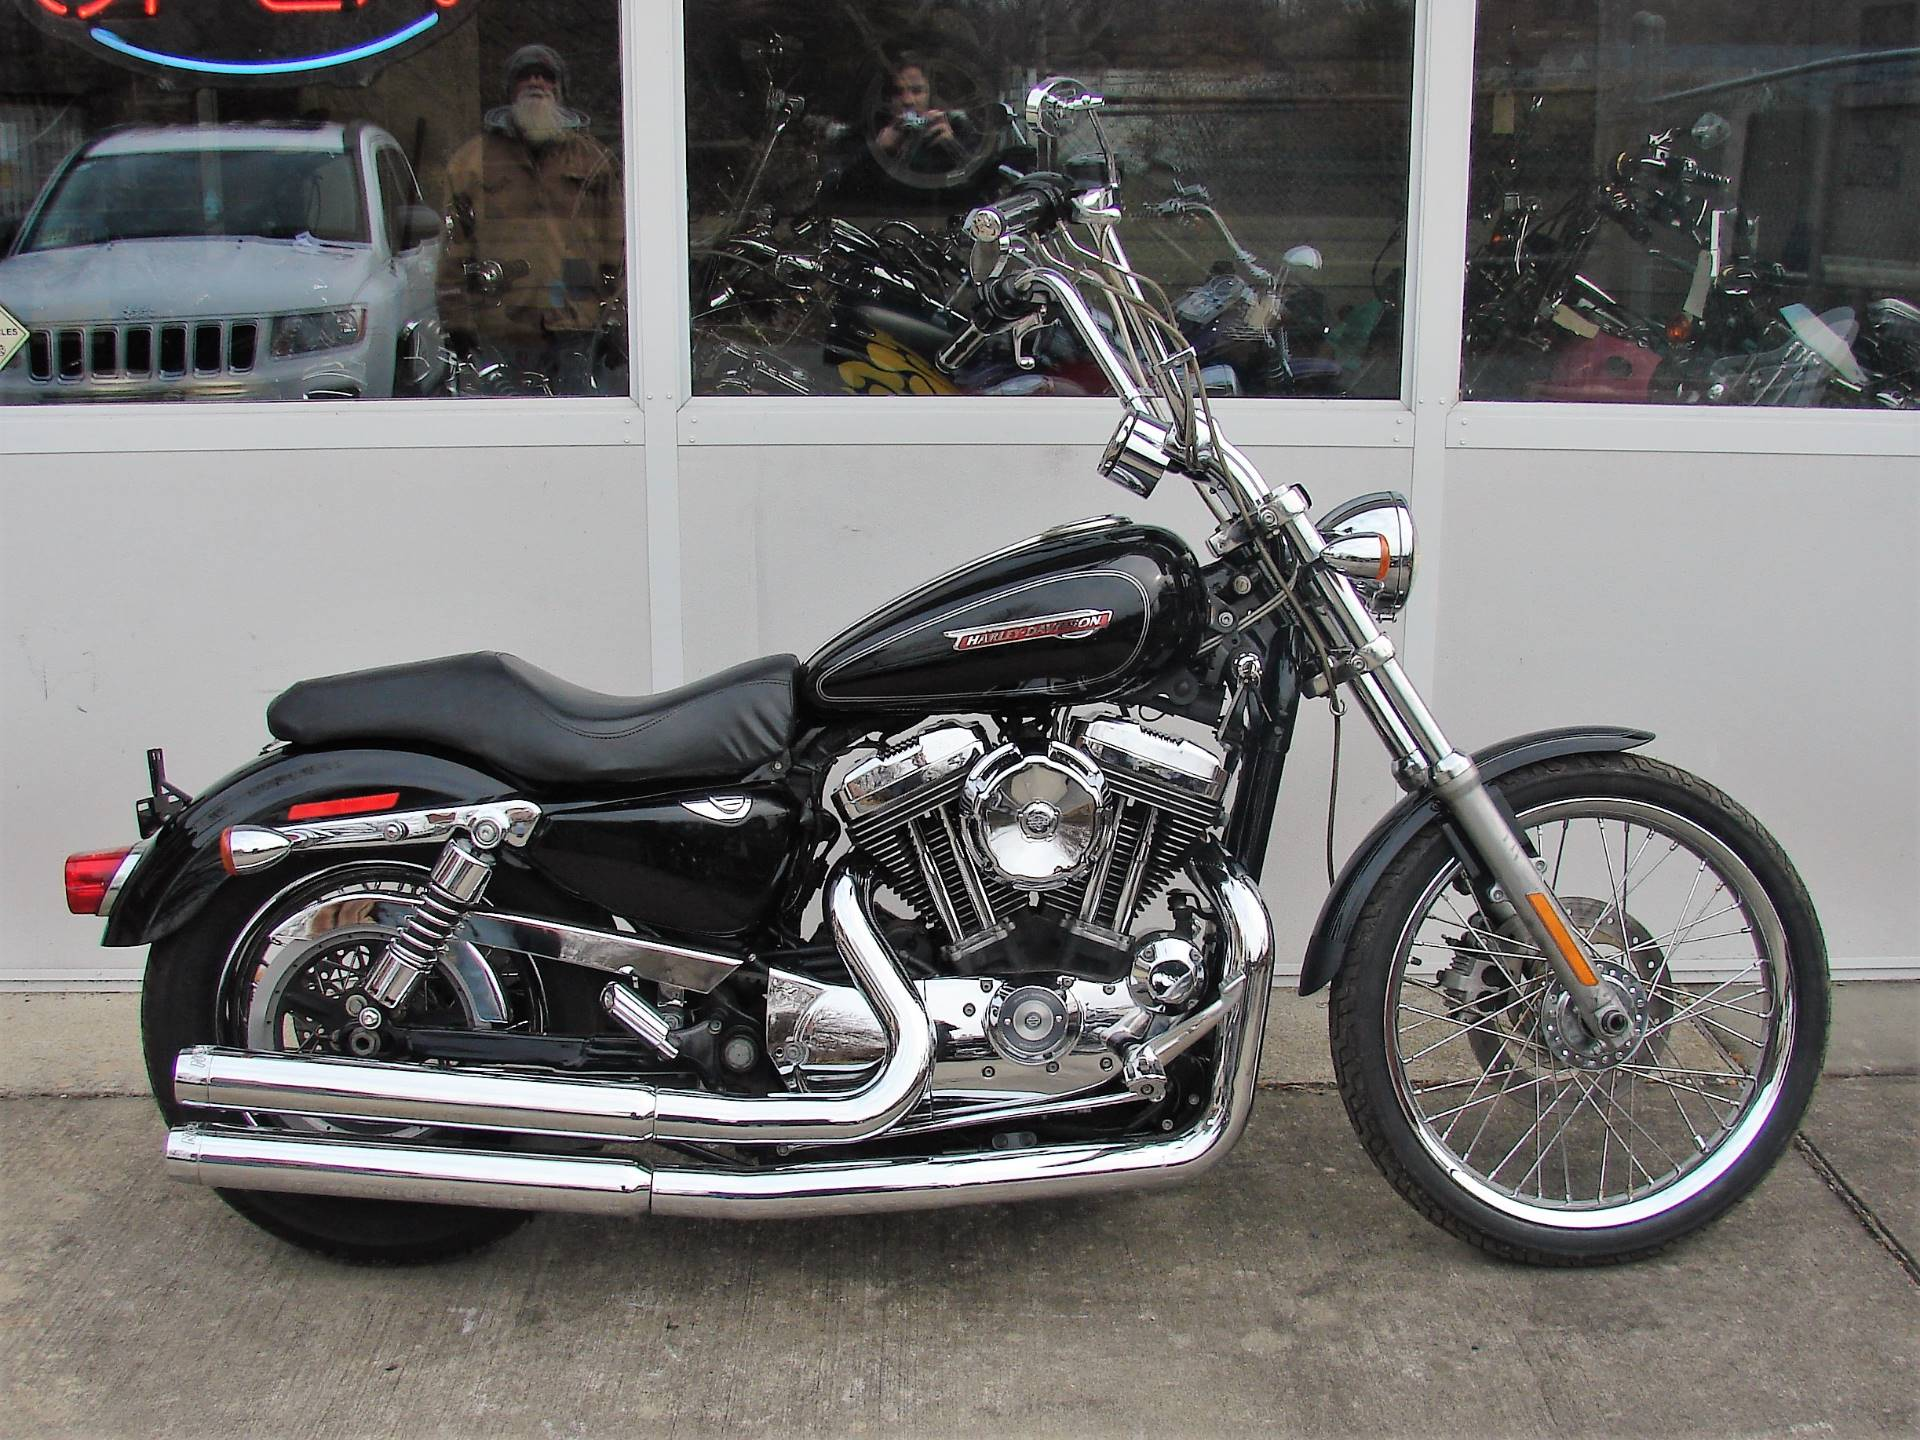 2008 Harley-Davidson 1200cc Sportster  (Black with Silver Pinstripe) in Williamstown, New Jersey - Photo 1